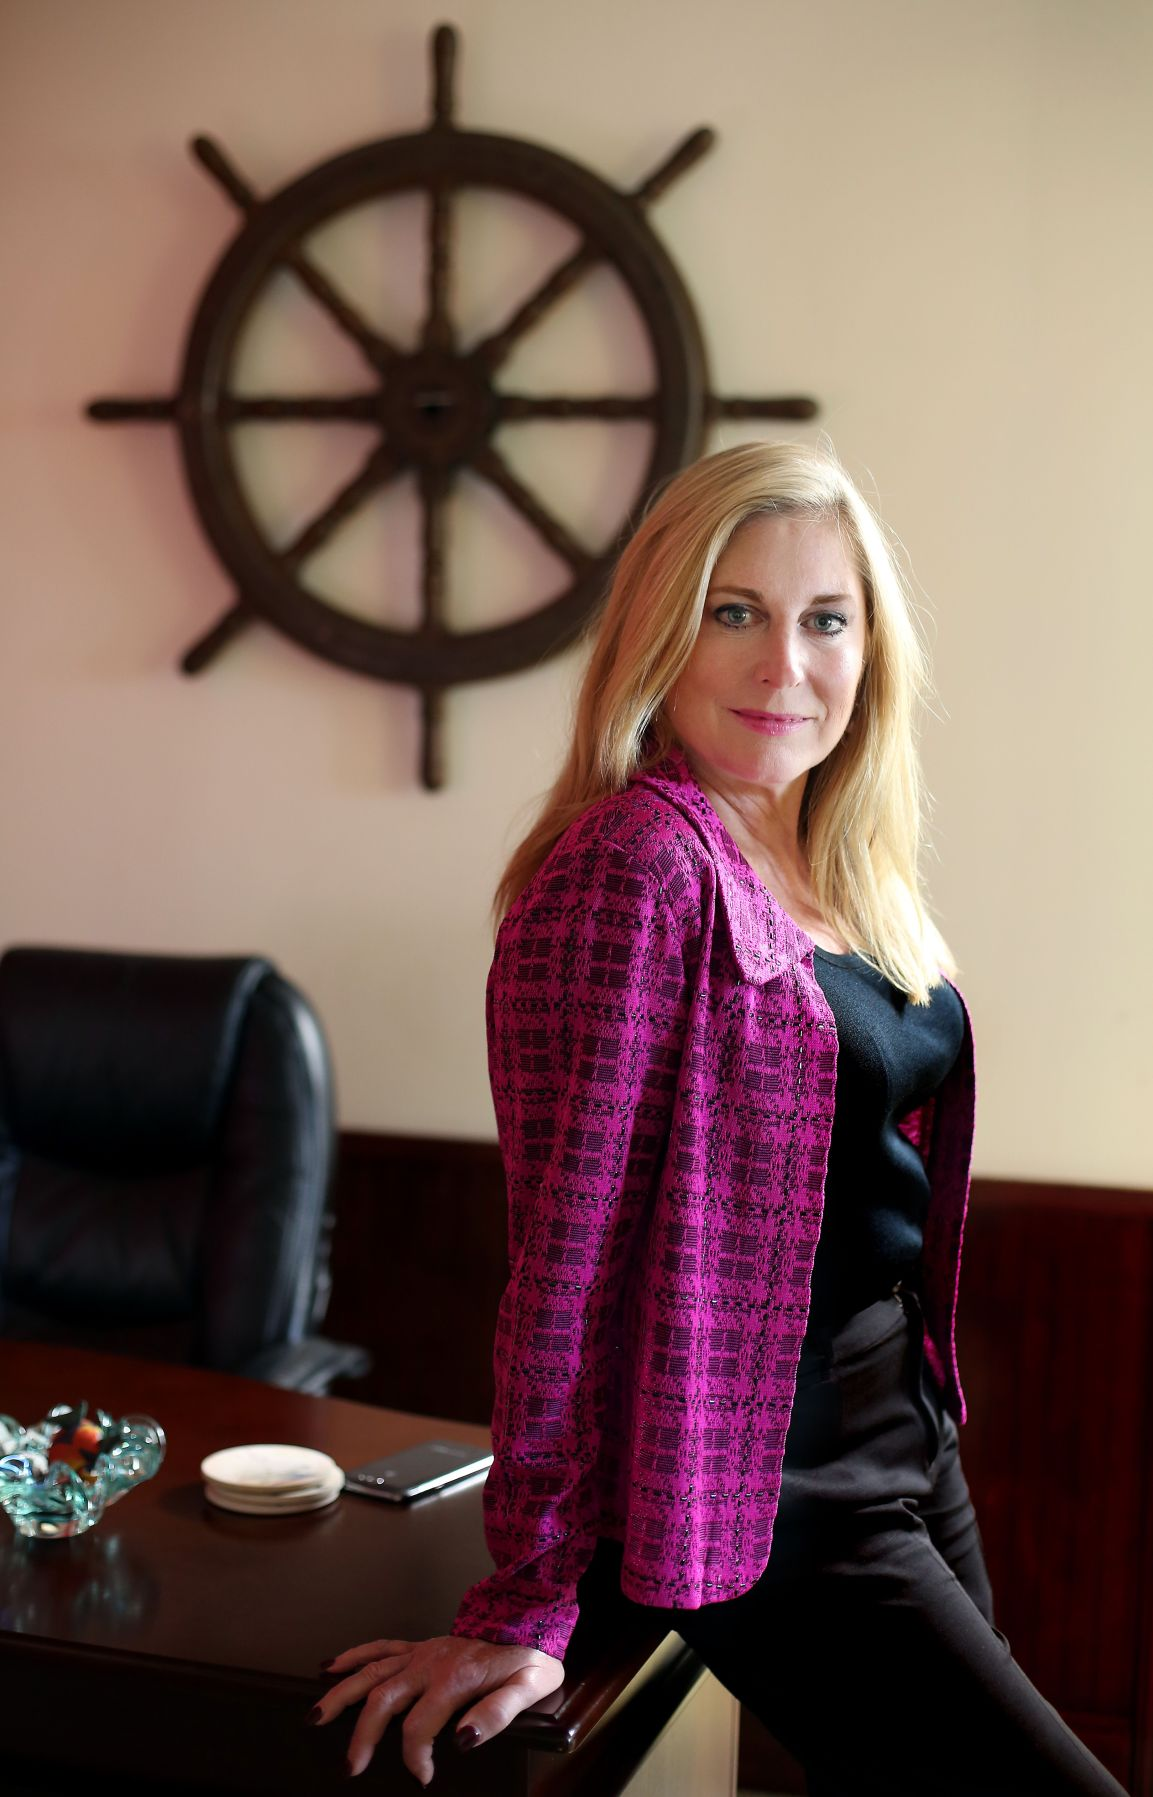 Local businesswoman making the world safer